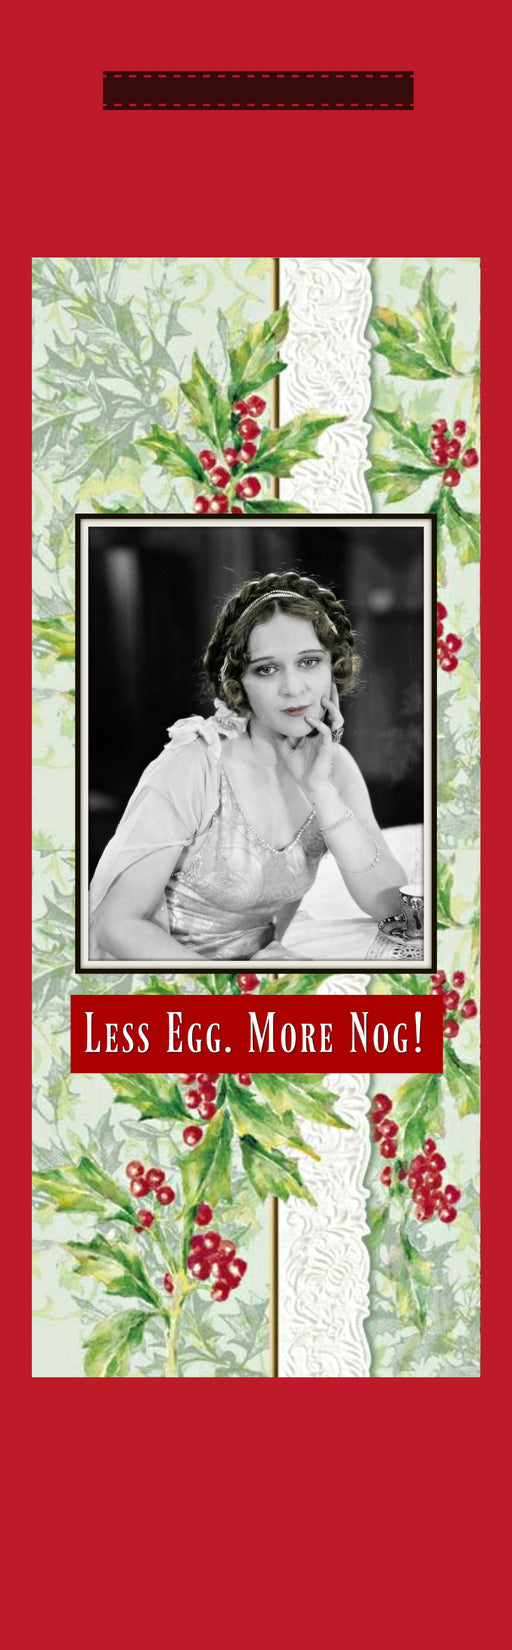 Less Egg, More Nog!